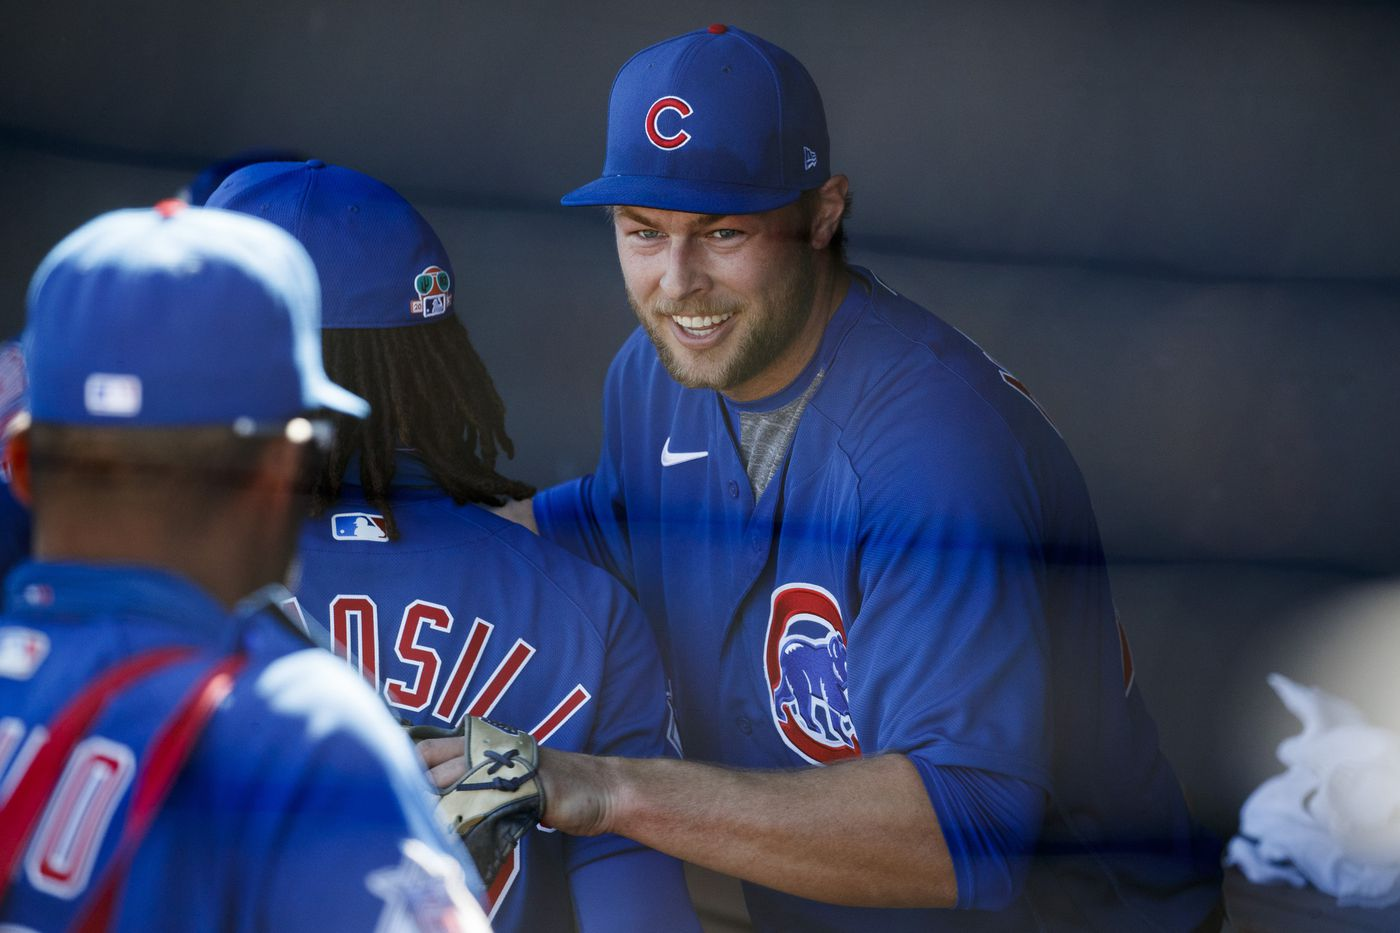 Cubs pitcher Trevor Megill smiles after the Cubs defeated the Padres 1-0.